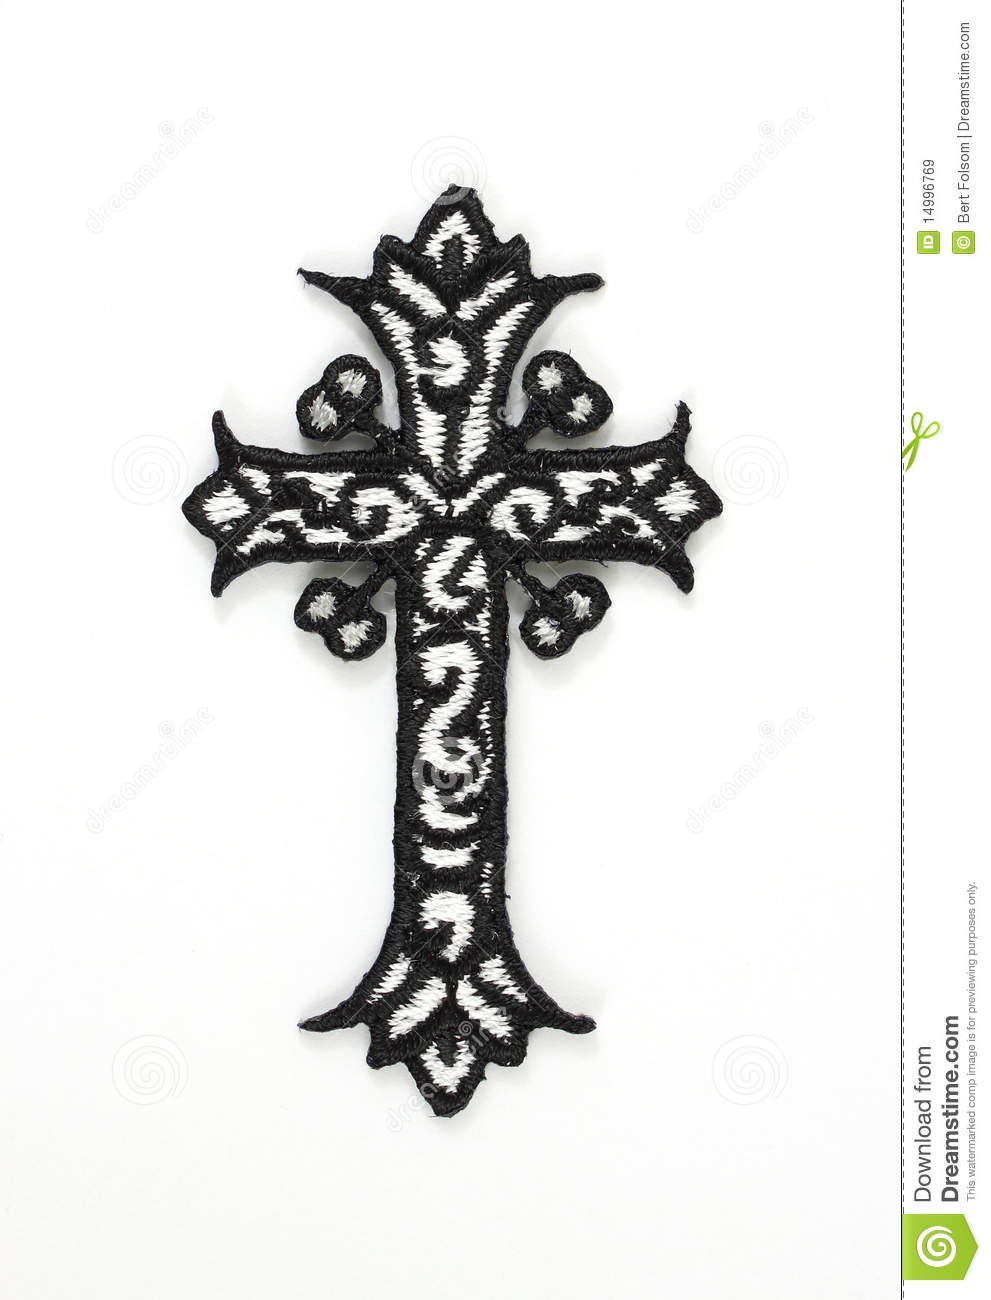 Ornate Cross Royalty Free Stock Images Image 14996769